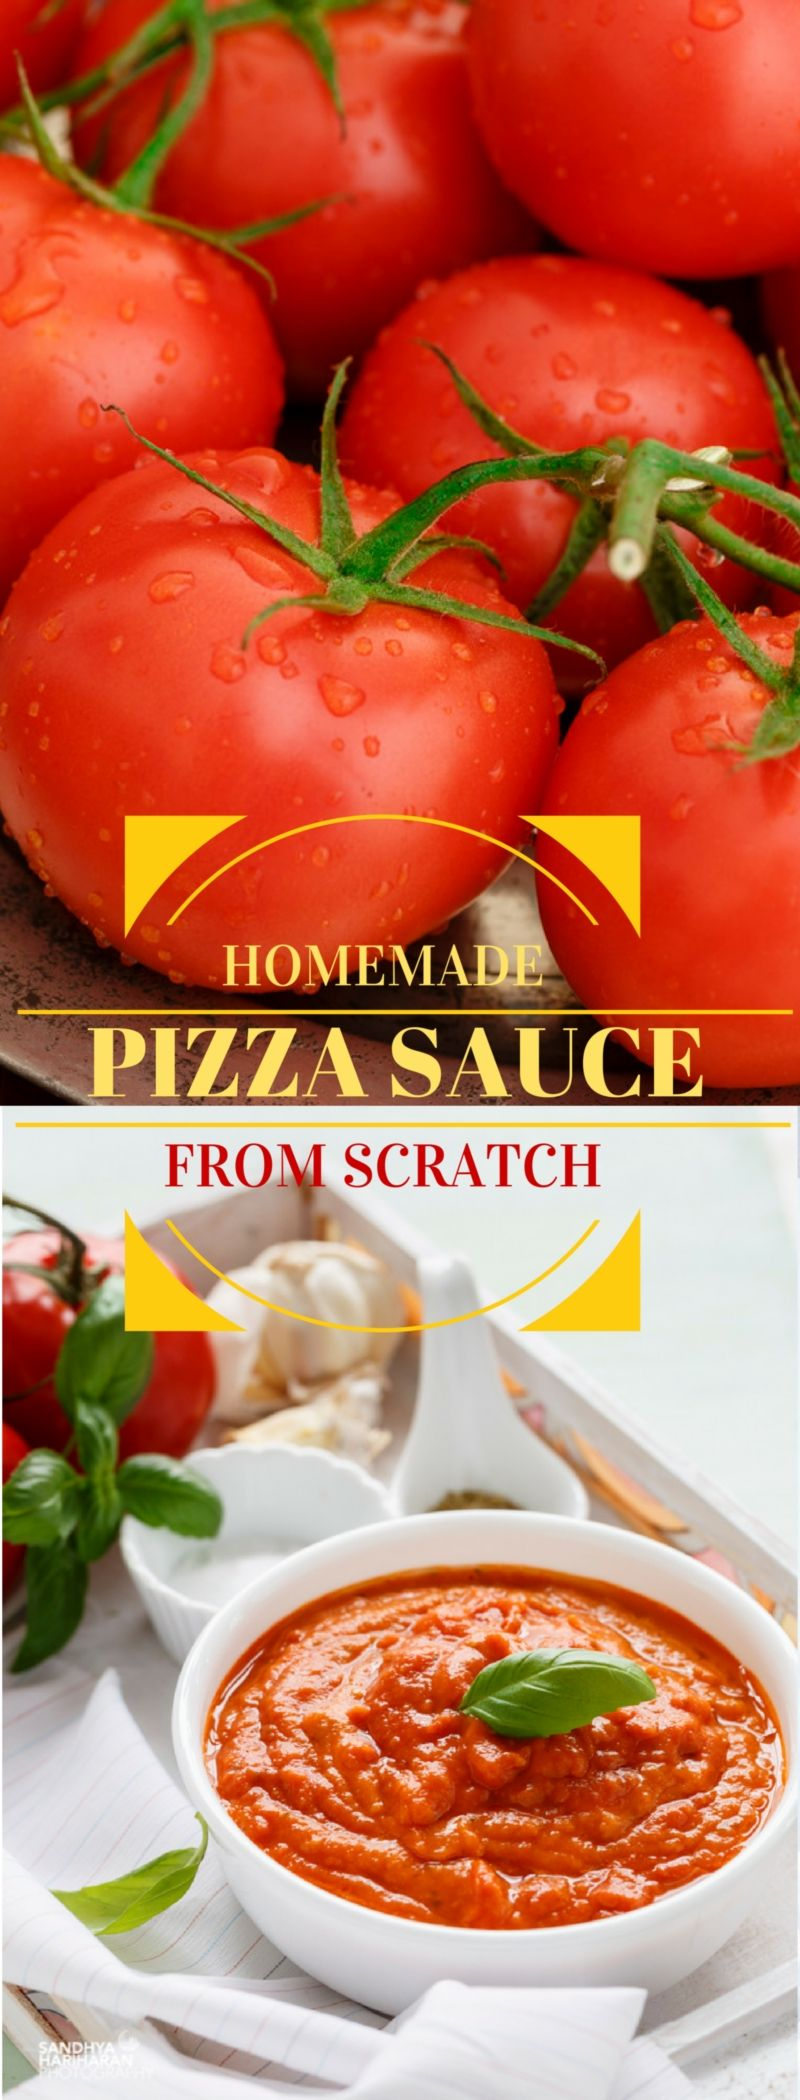 Home made Pizza Sauce from Scratch Homemade pizza sauce